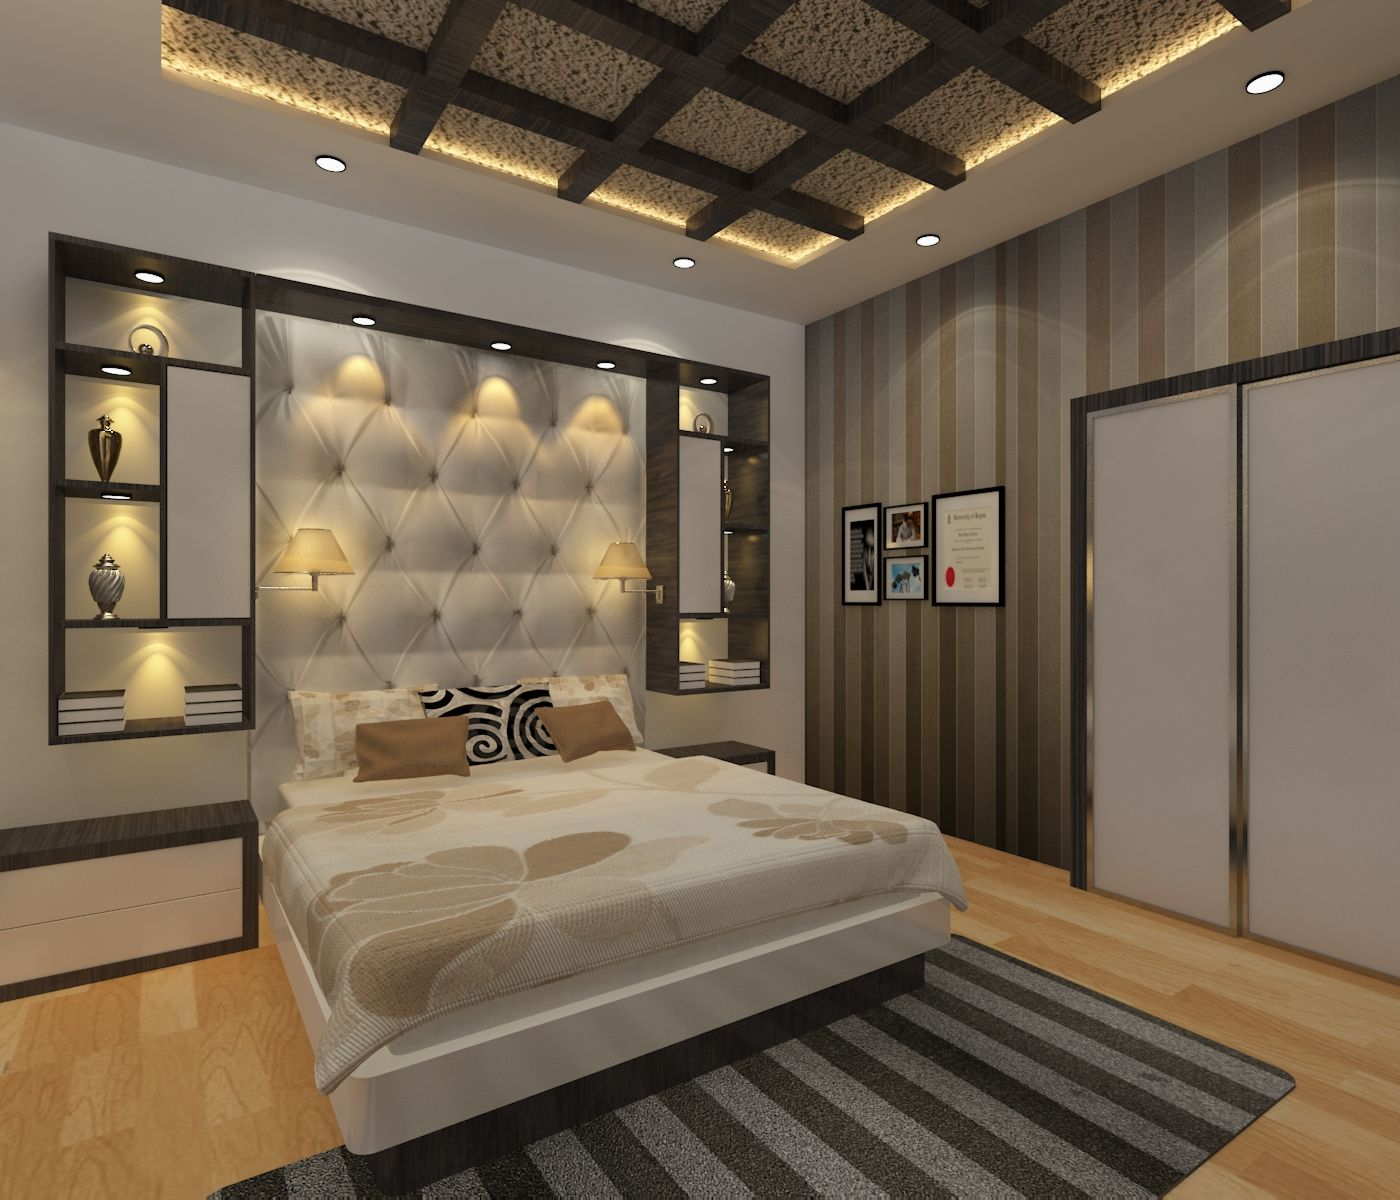 New Interior Design Bedroom: Luxury Bedroom With Elements Bedroom , Bed, Cover, Ceiling